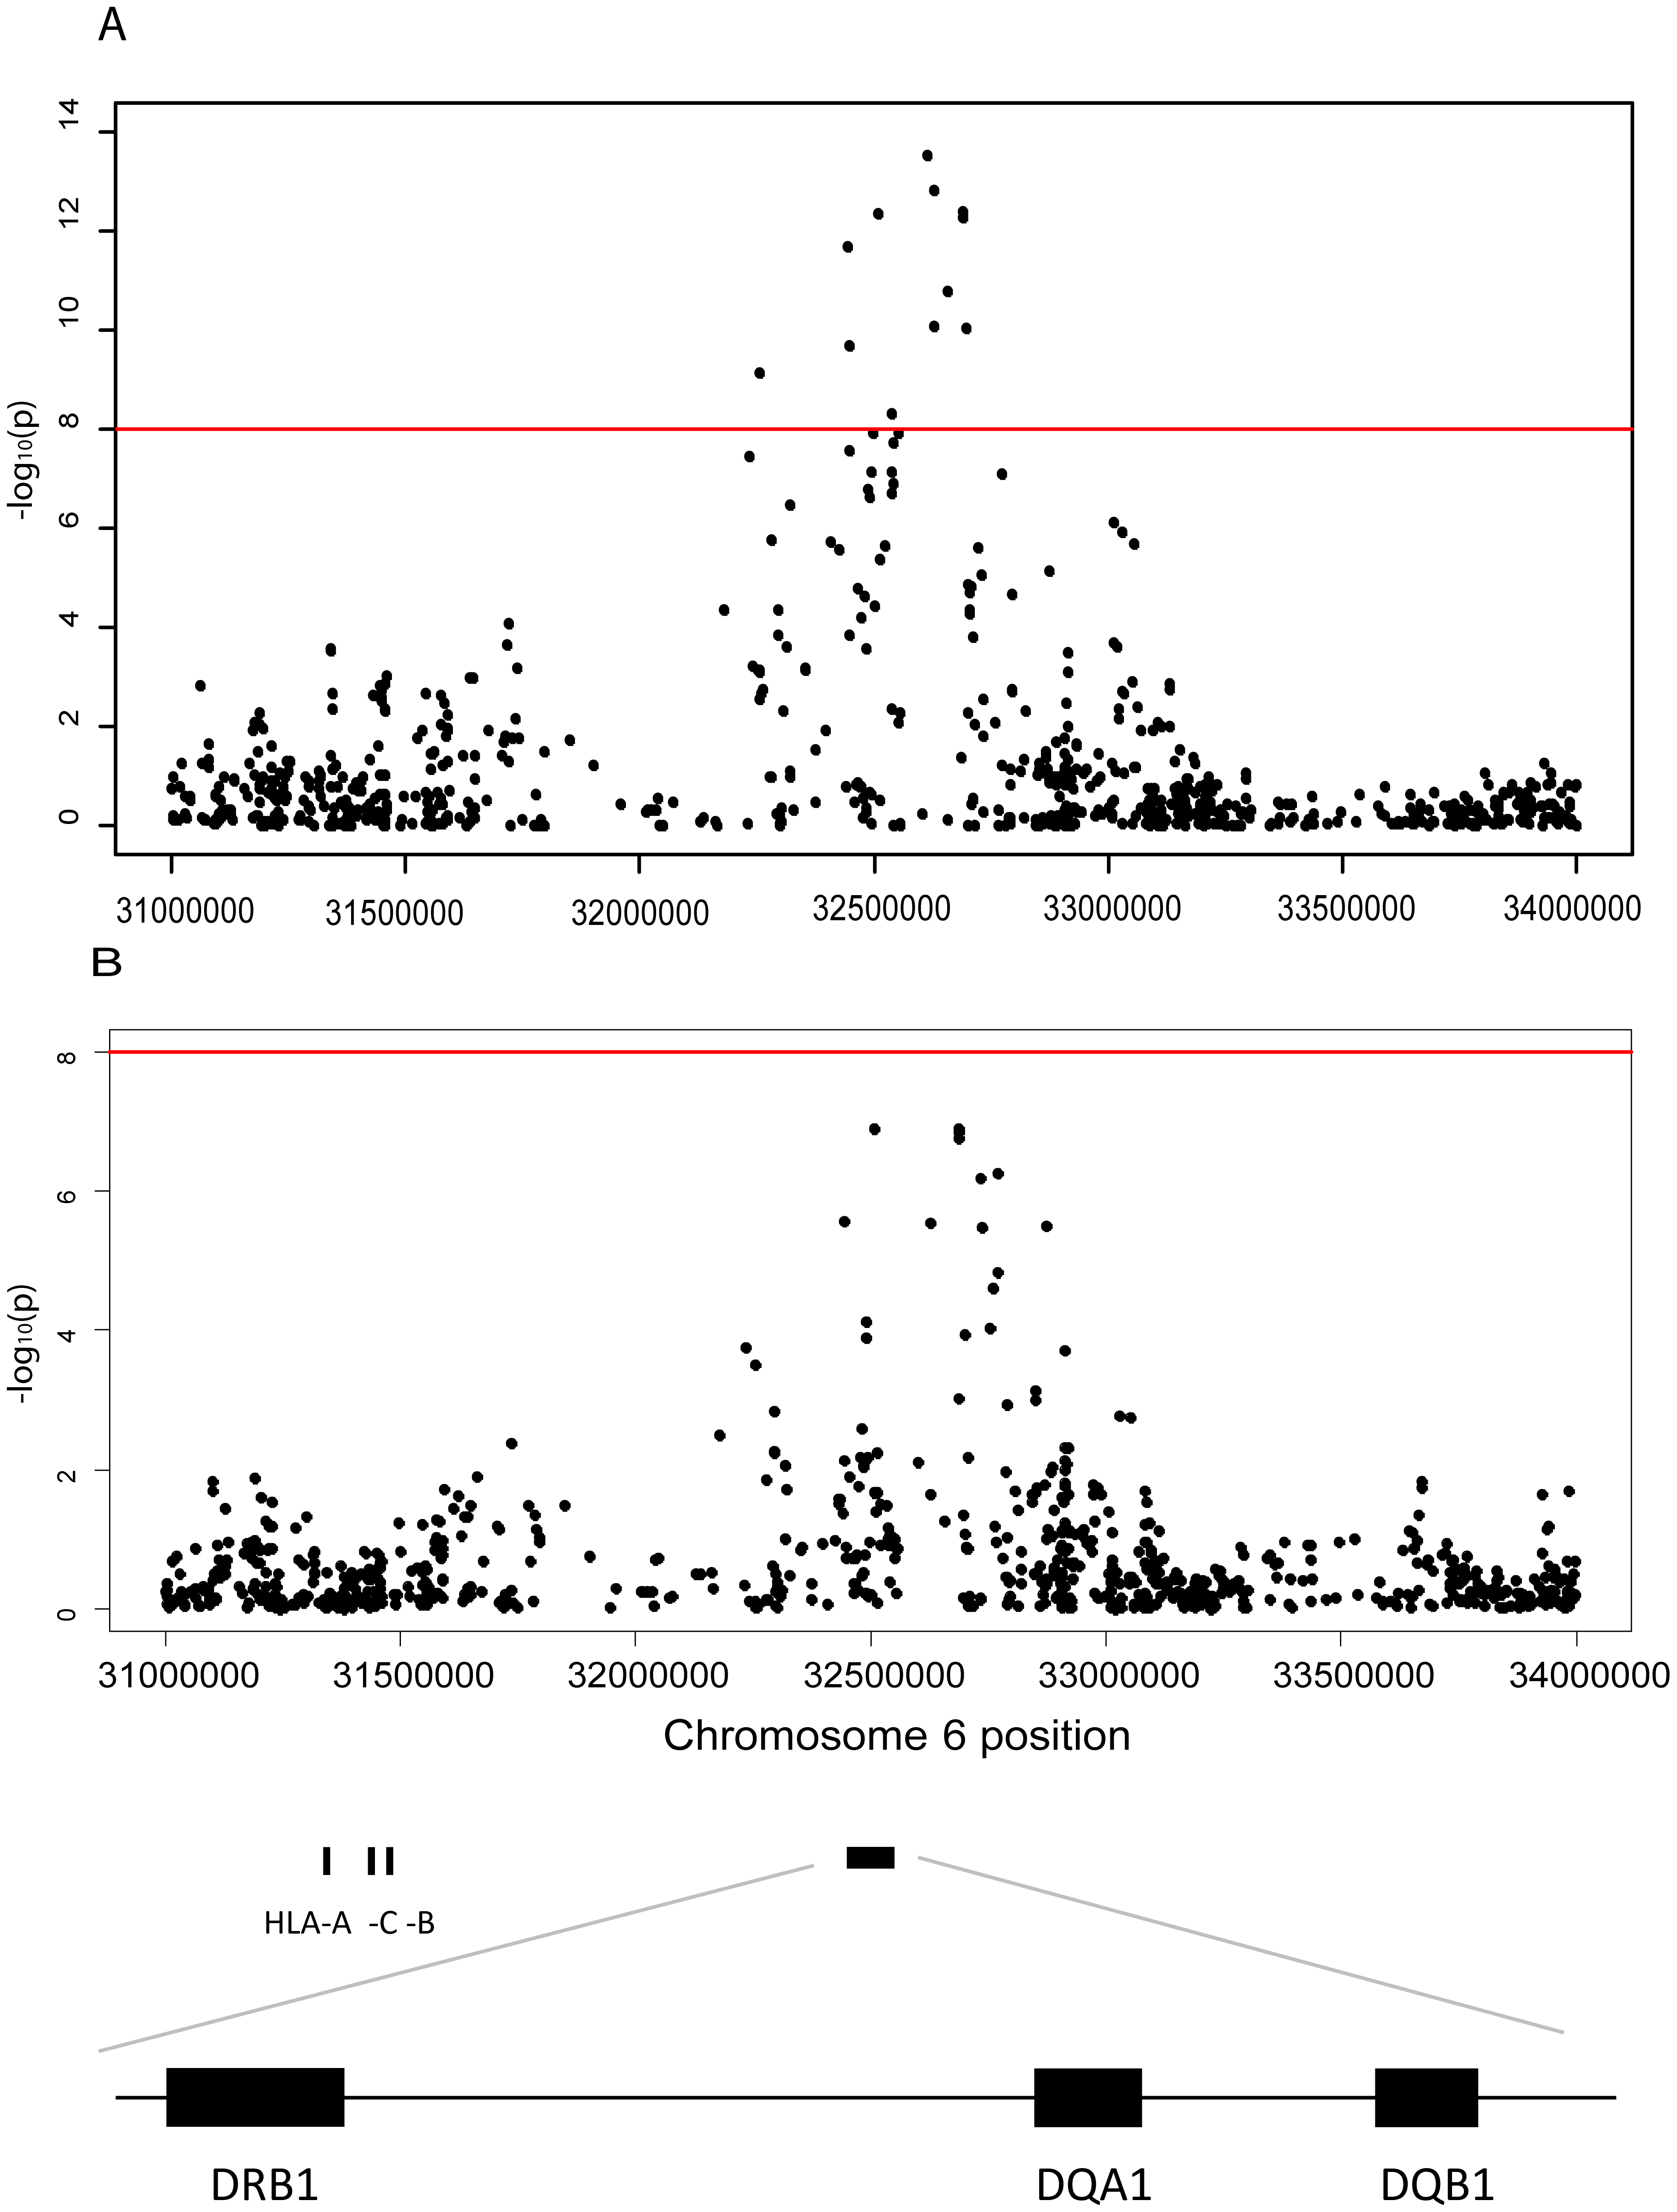 Association between JCA antibody response and markers in the Human Leuococyte region on chromosome 6.